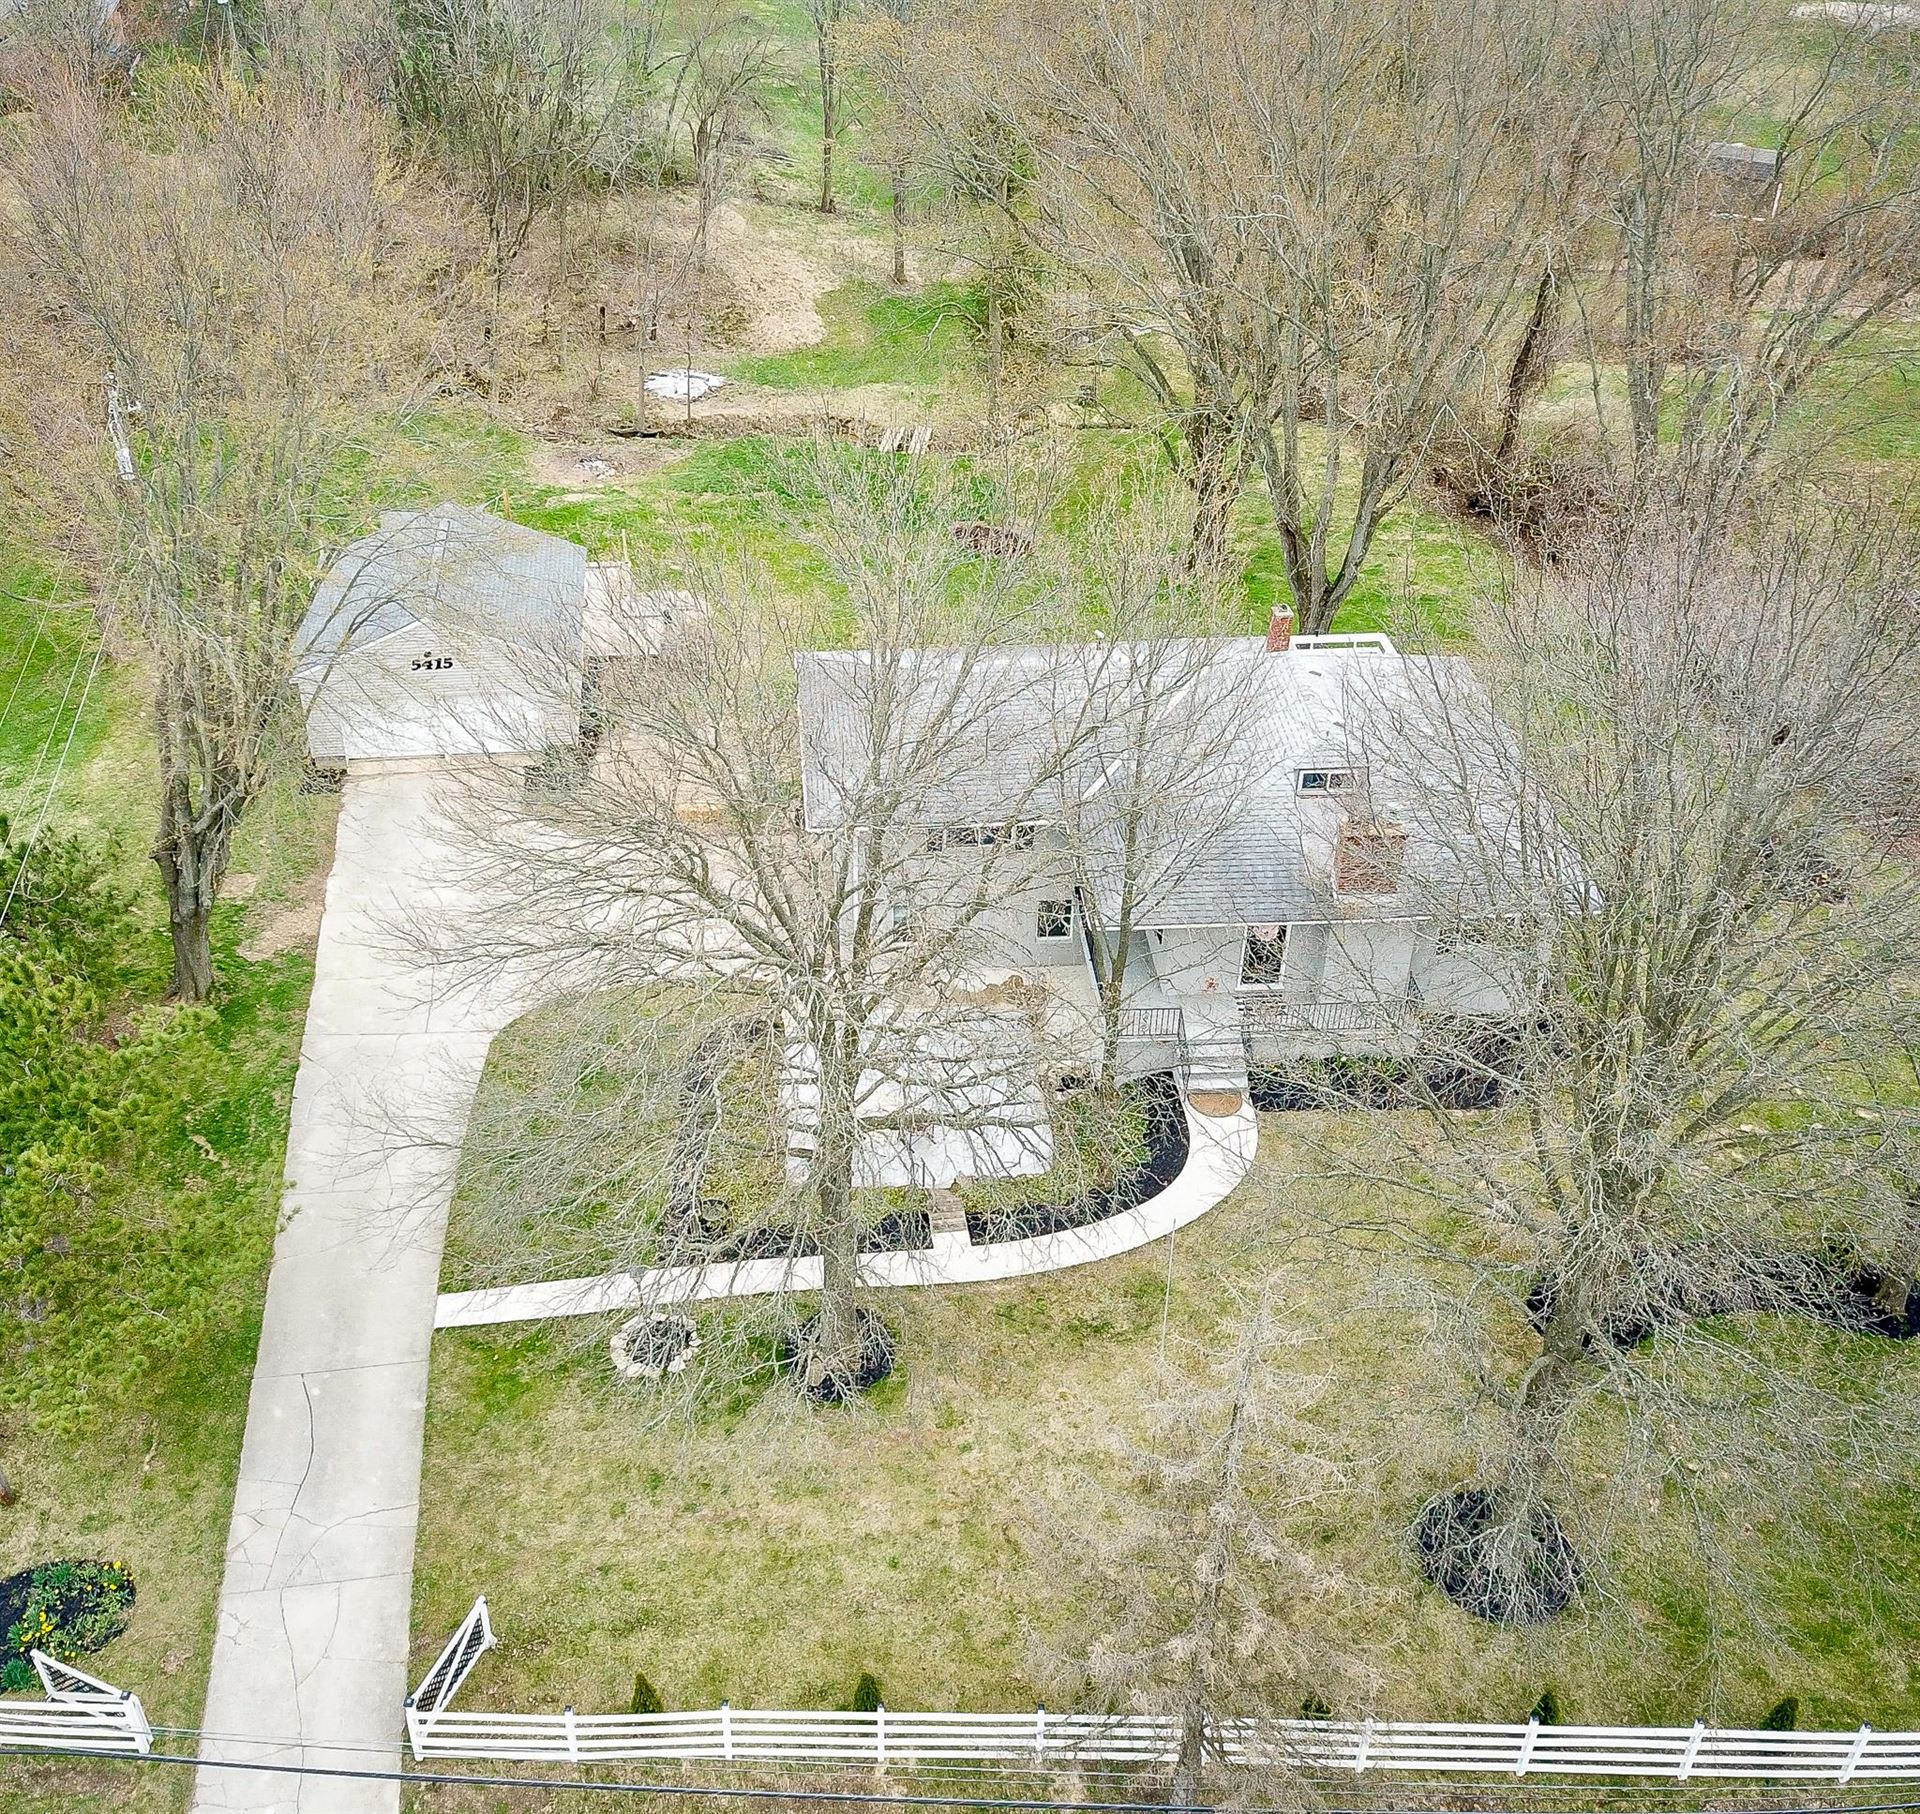 5415 S Old State Road, Lewis Center, OH 43035 - MLS#: 221010150